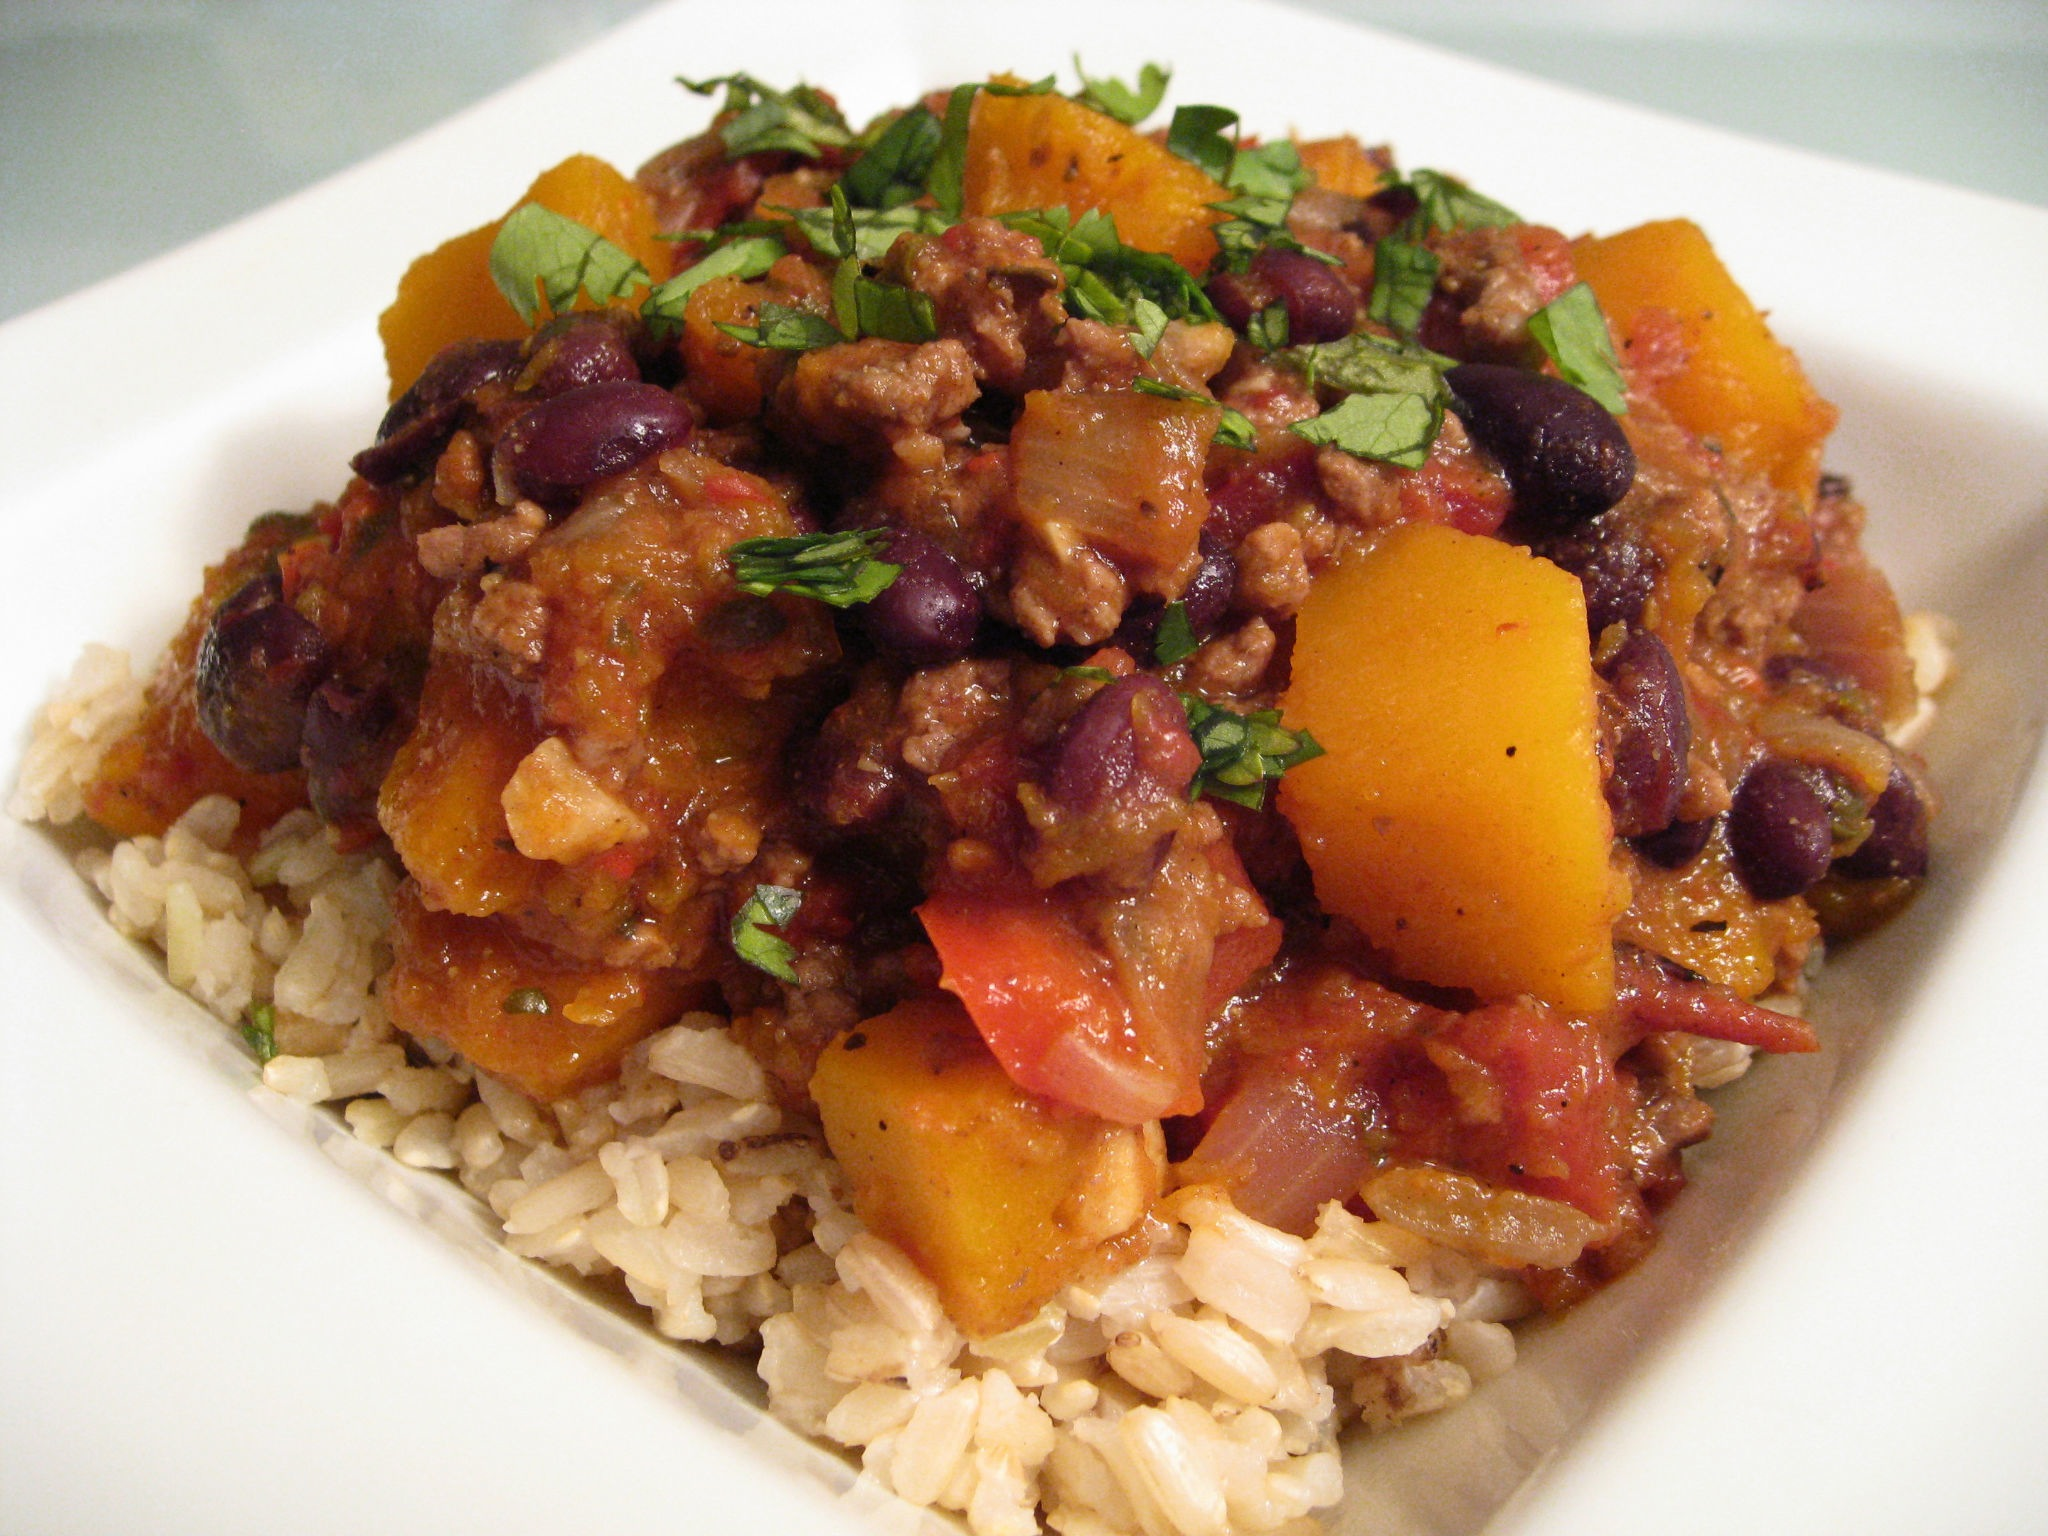 Almost Meatless Butternut Squash and Black Bean Chili